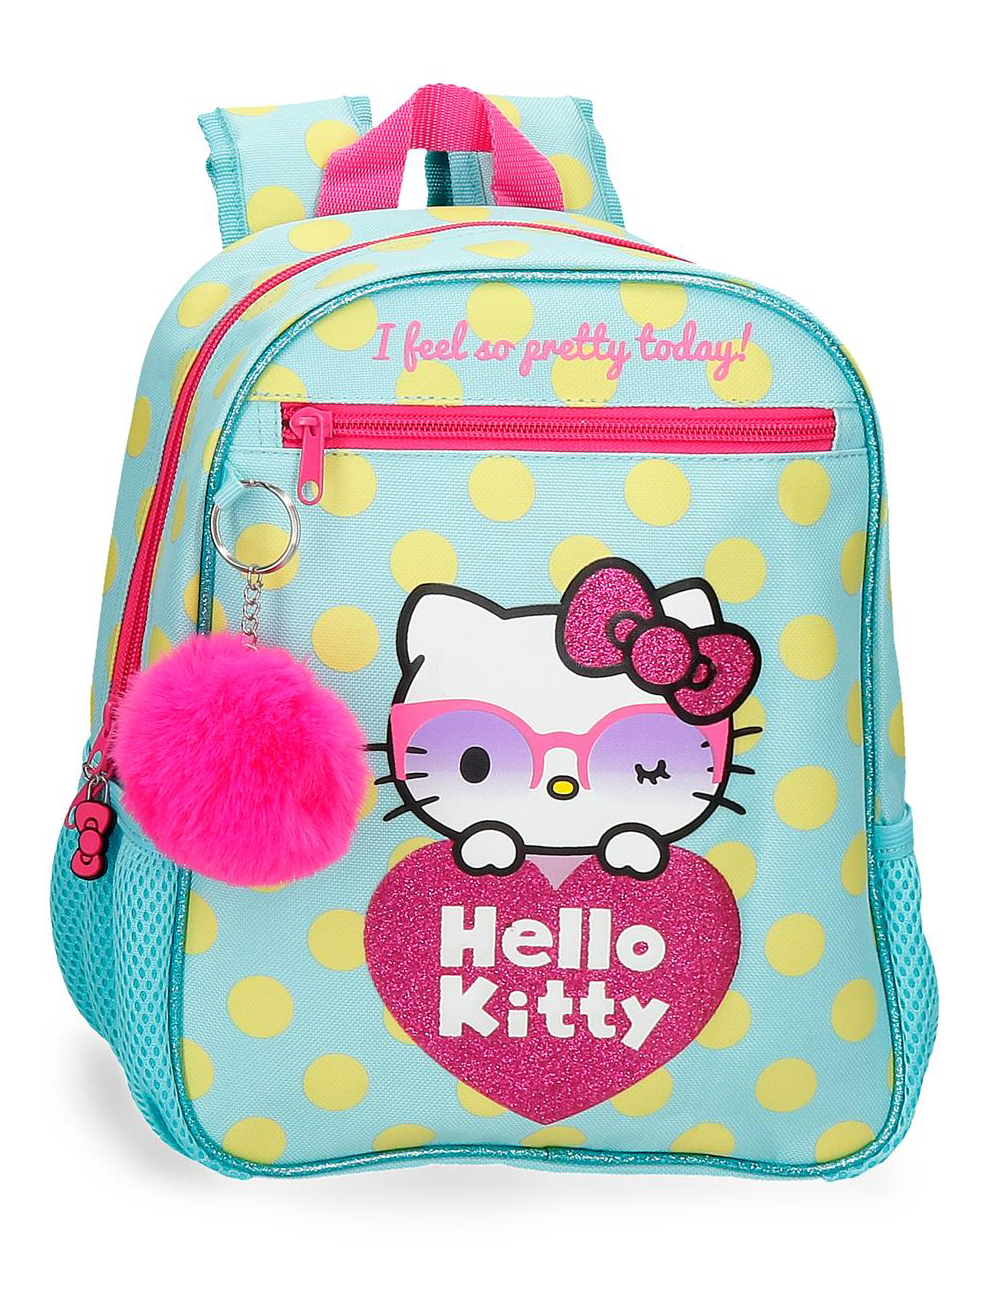 4262121 Mochila 28cm Hello Kitty Pretty Glasses